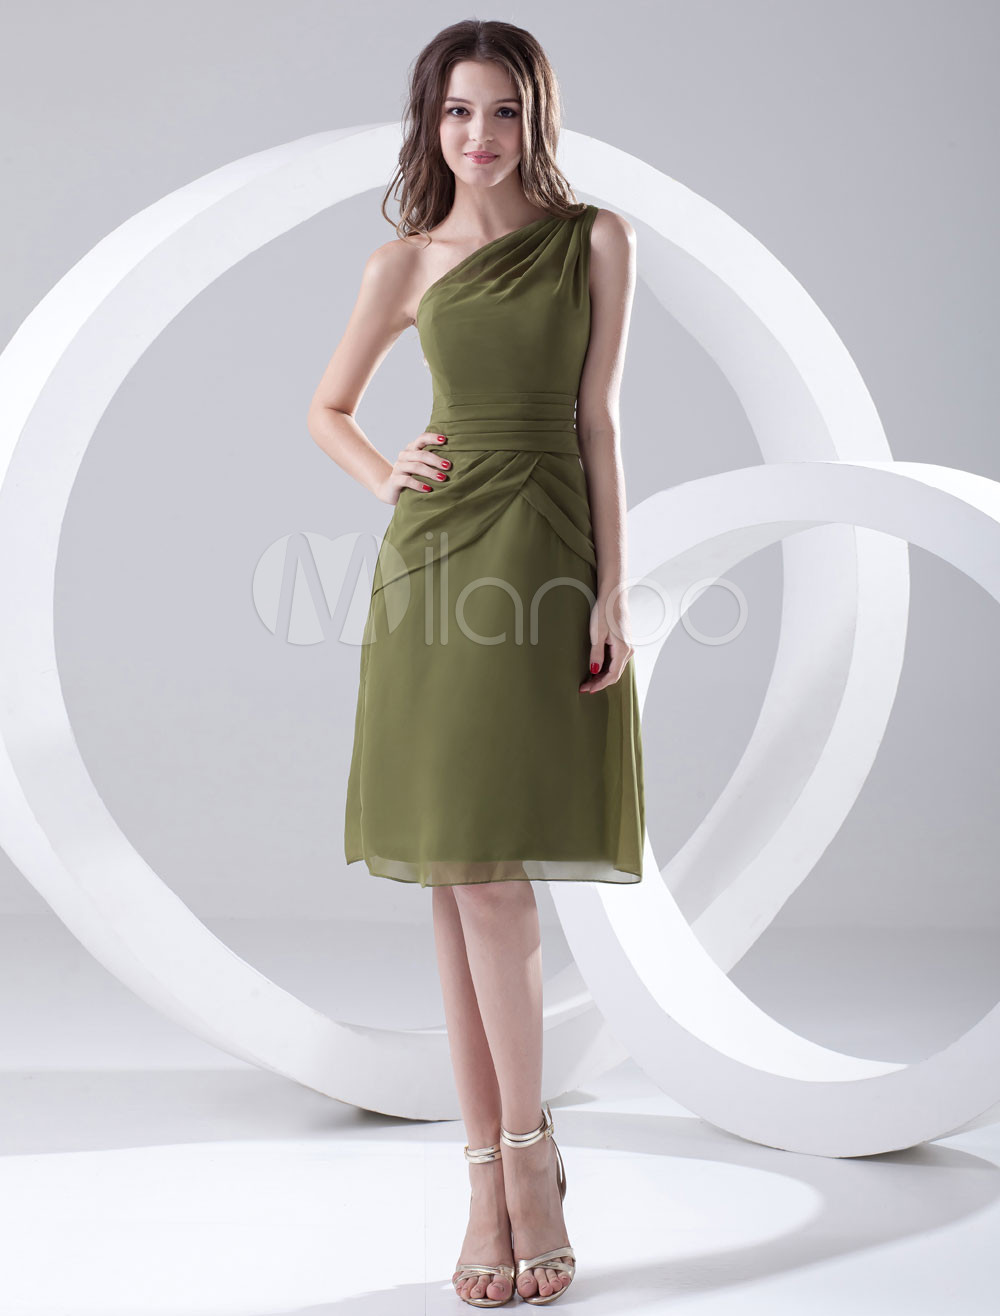 A-line Hunter Green Chiffon One-Shoulder Knee-Length Bridesmaid Dress For Wedding